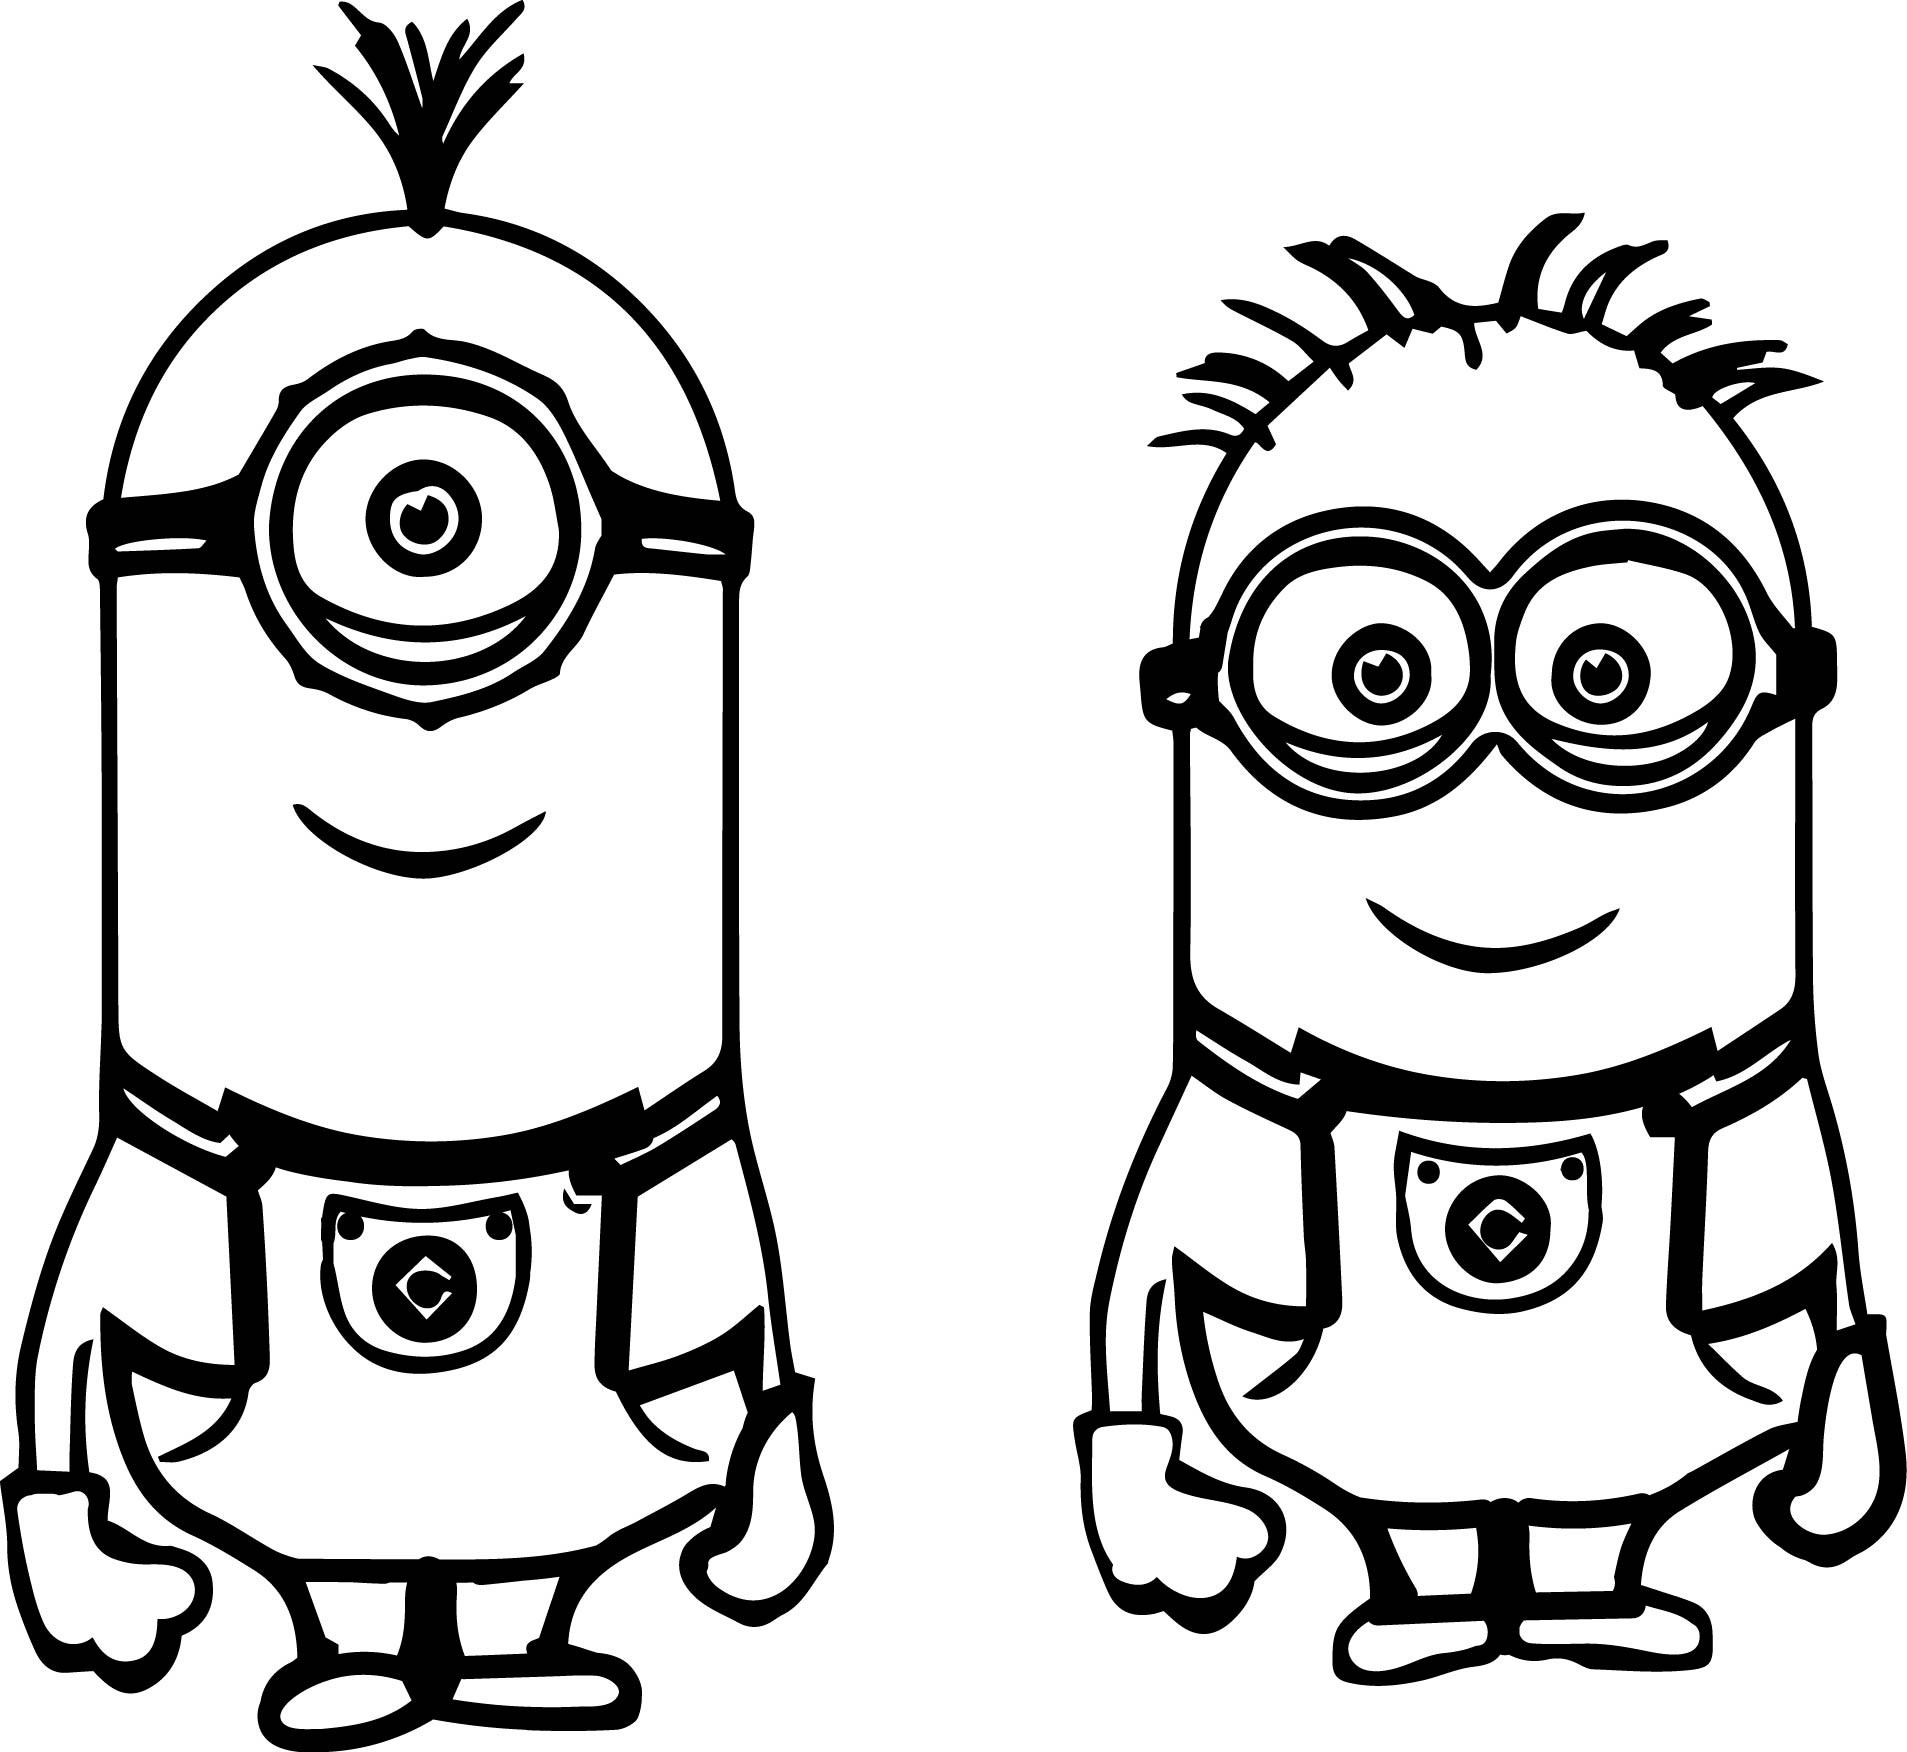 minions drawing how to draw bob from minions step 7 minion drawing drawing minions